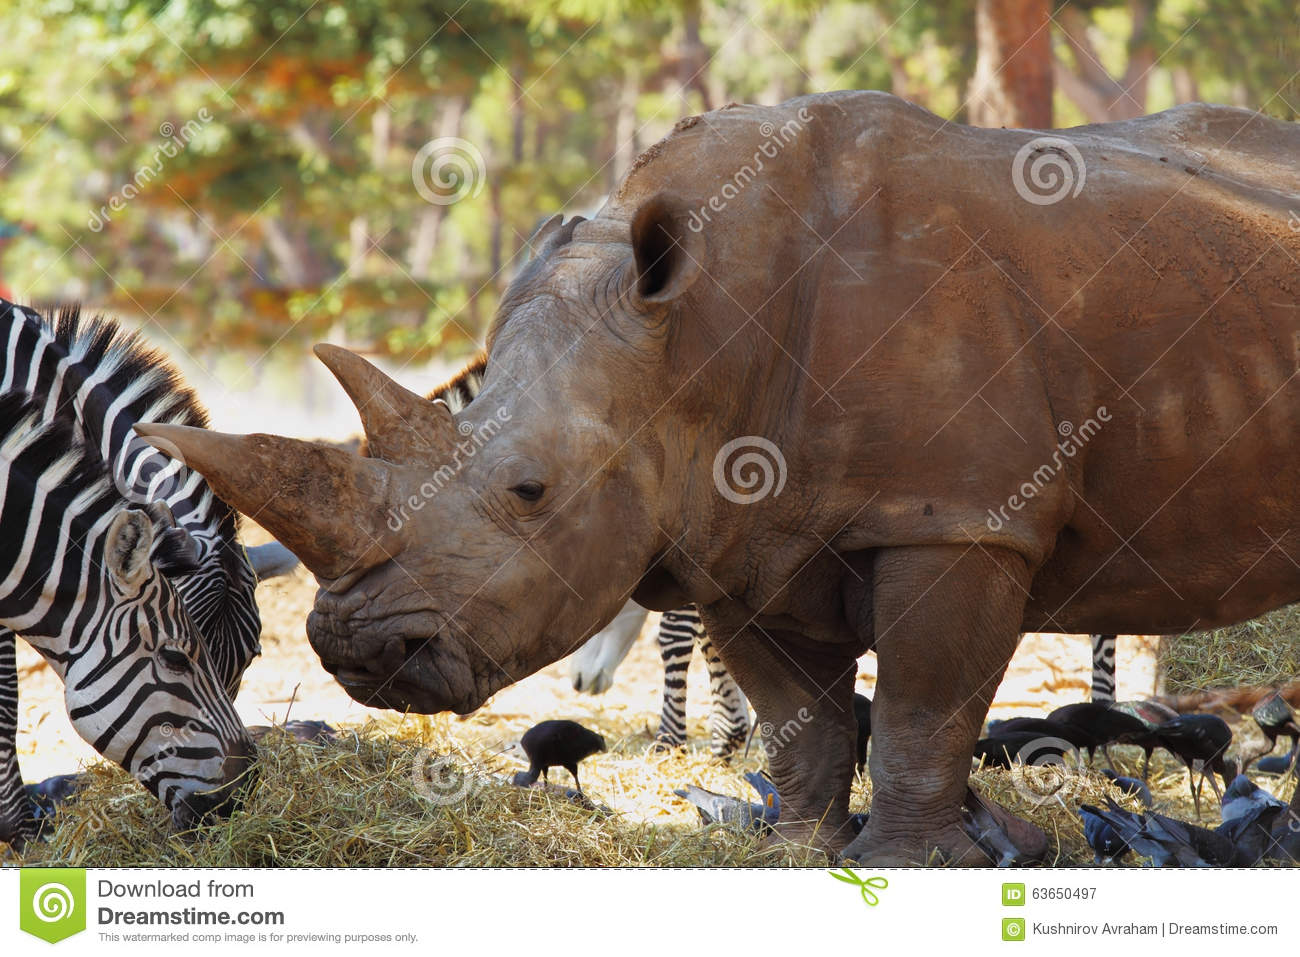 Zebras and rhinos walking together